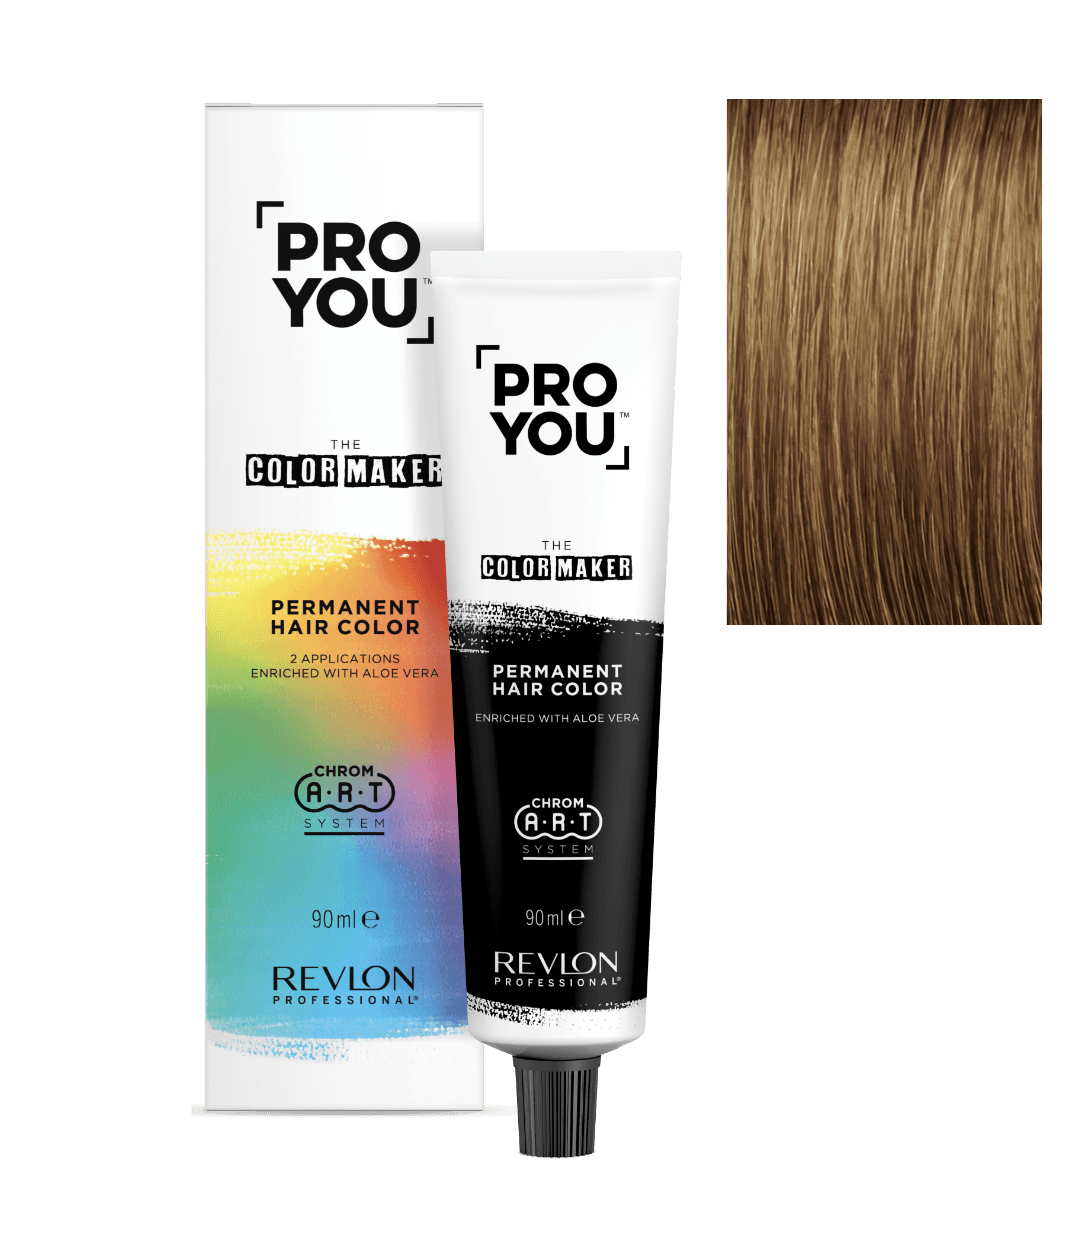 revlon professional ProYou Color Maker 7.33 | Duo Cosmetics